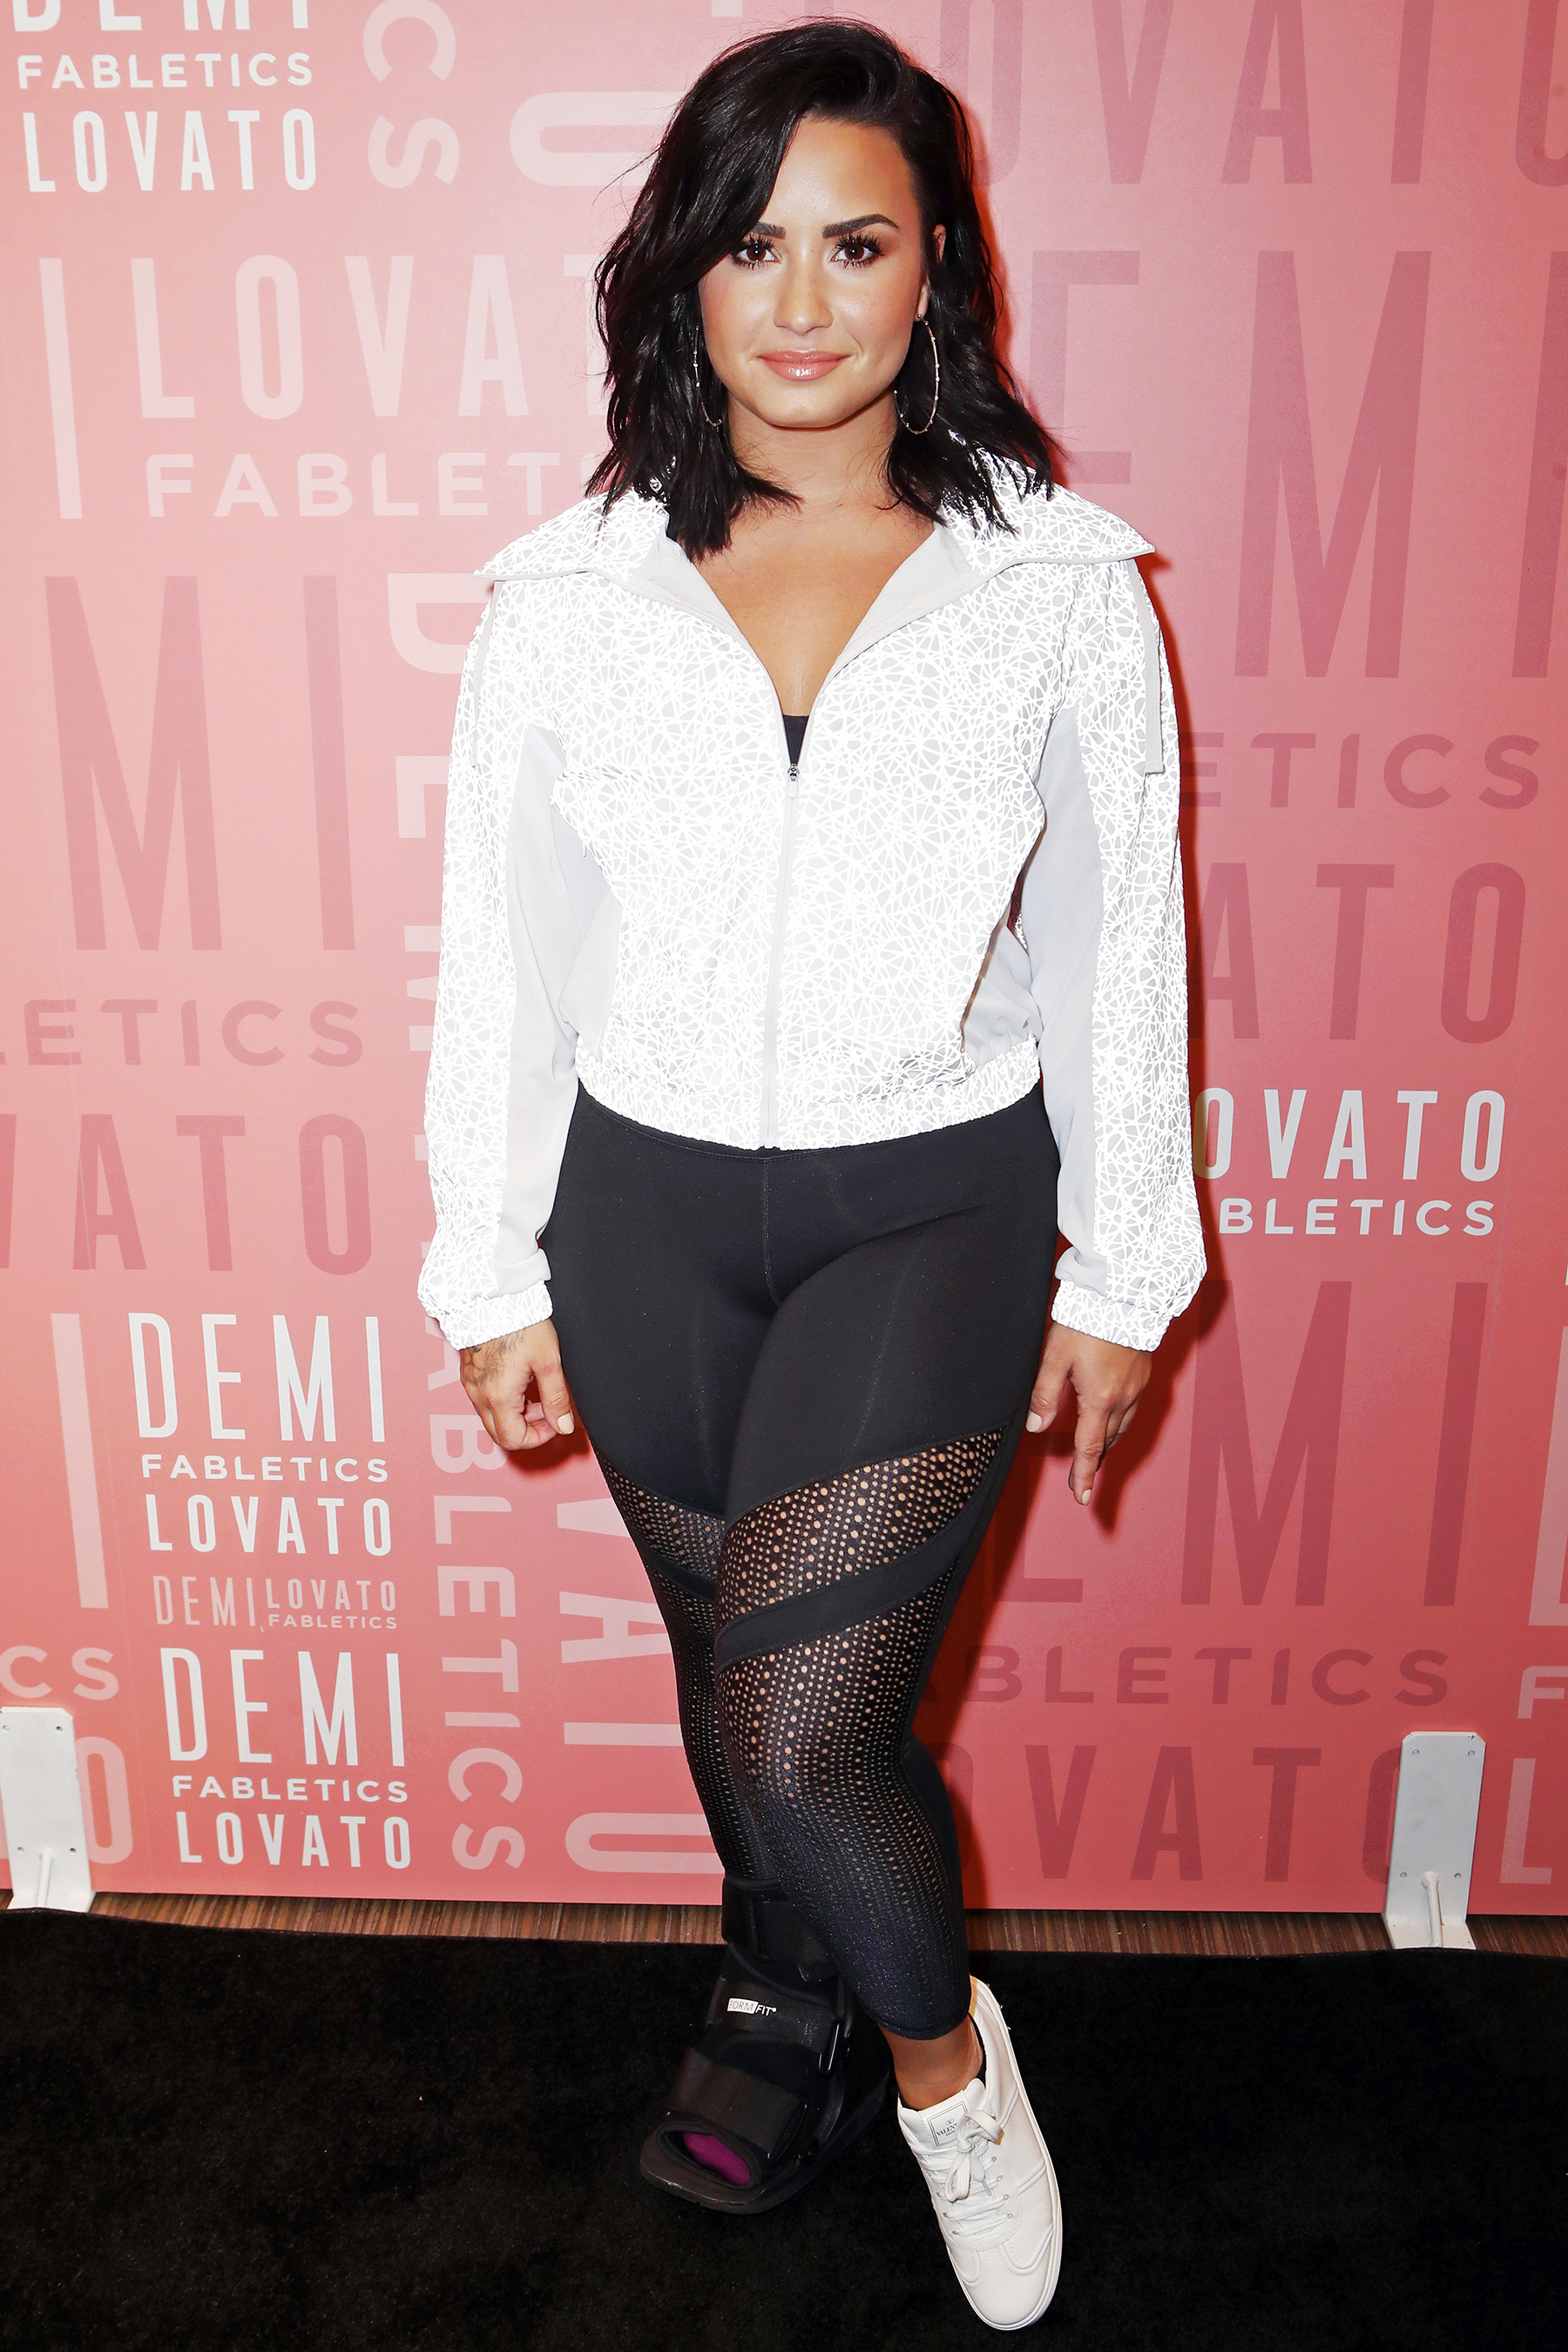 Demi Lovato Calls Out 'Fat Shaming' Ad in Her Instagram Feed: 'This Is Absolutely Harmful'